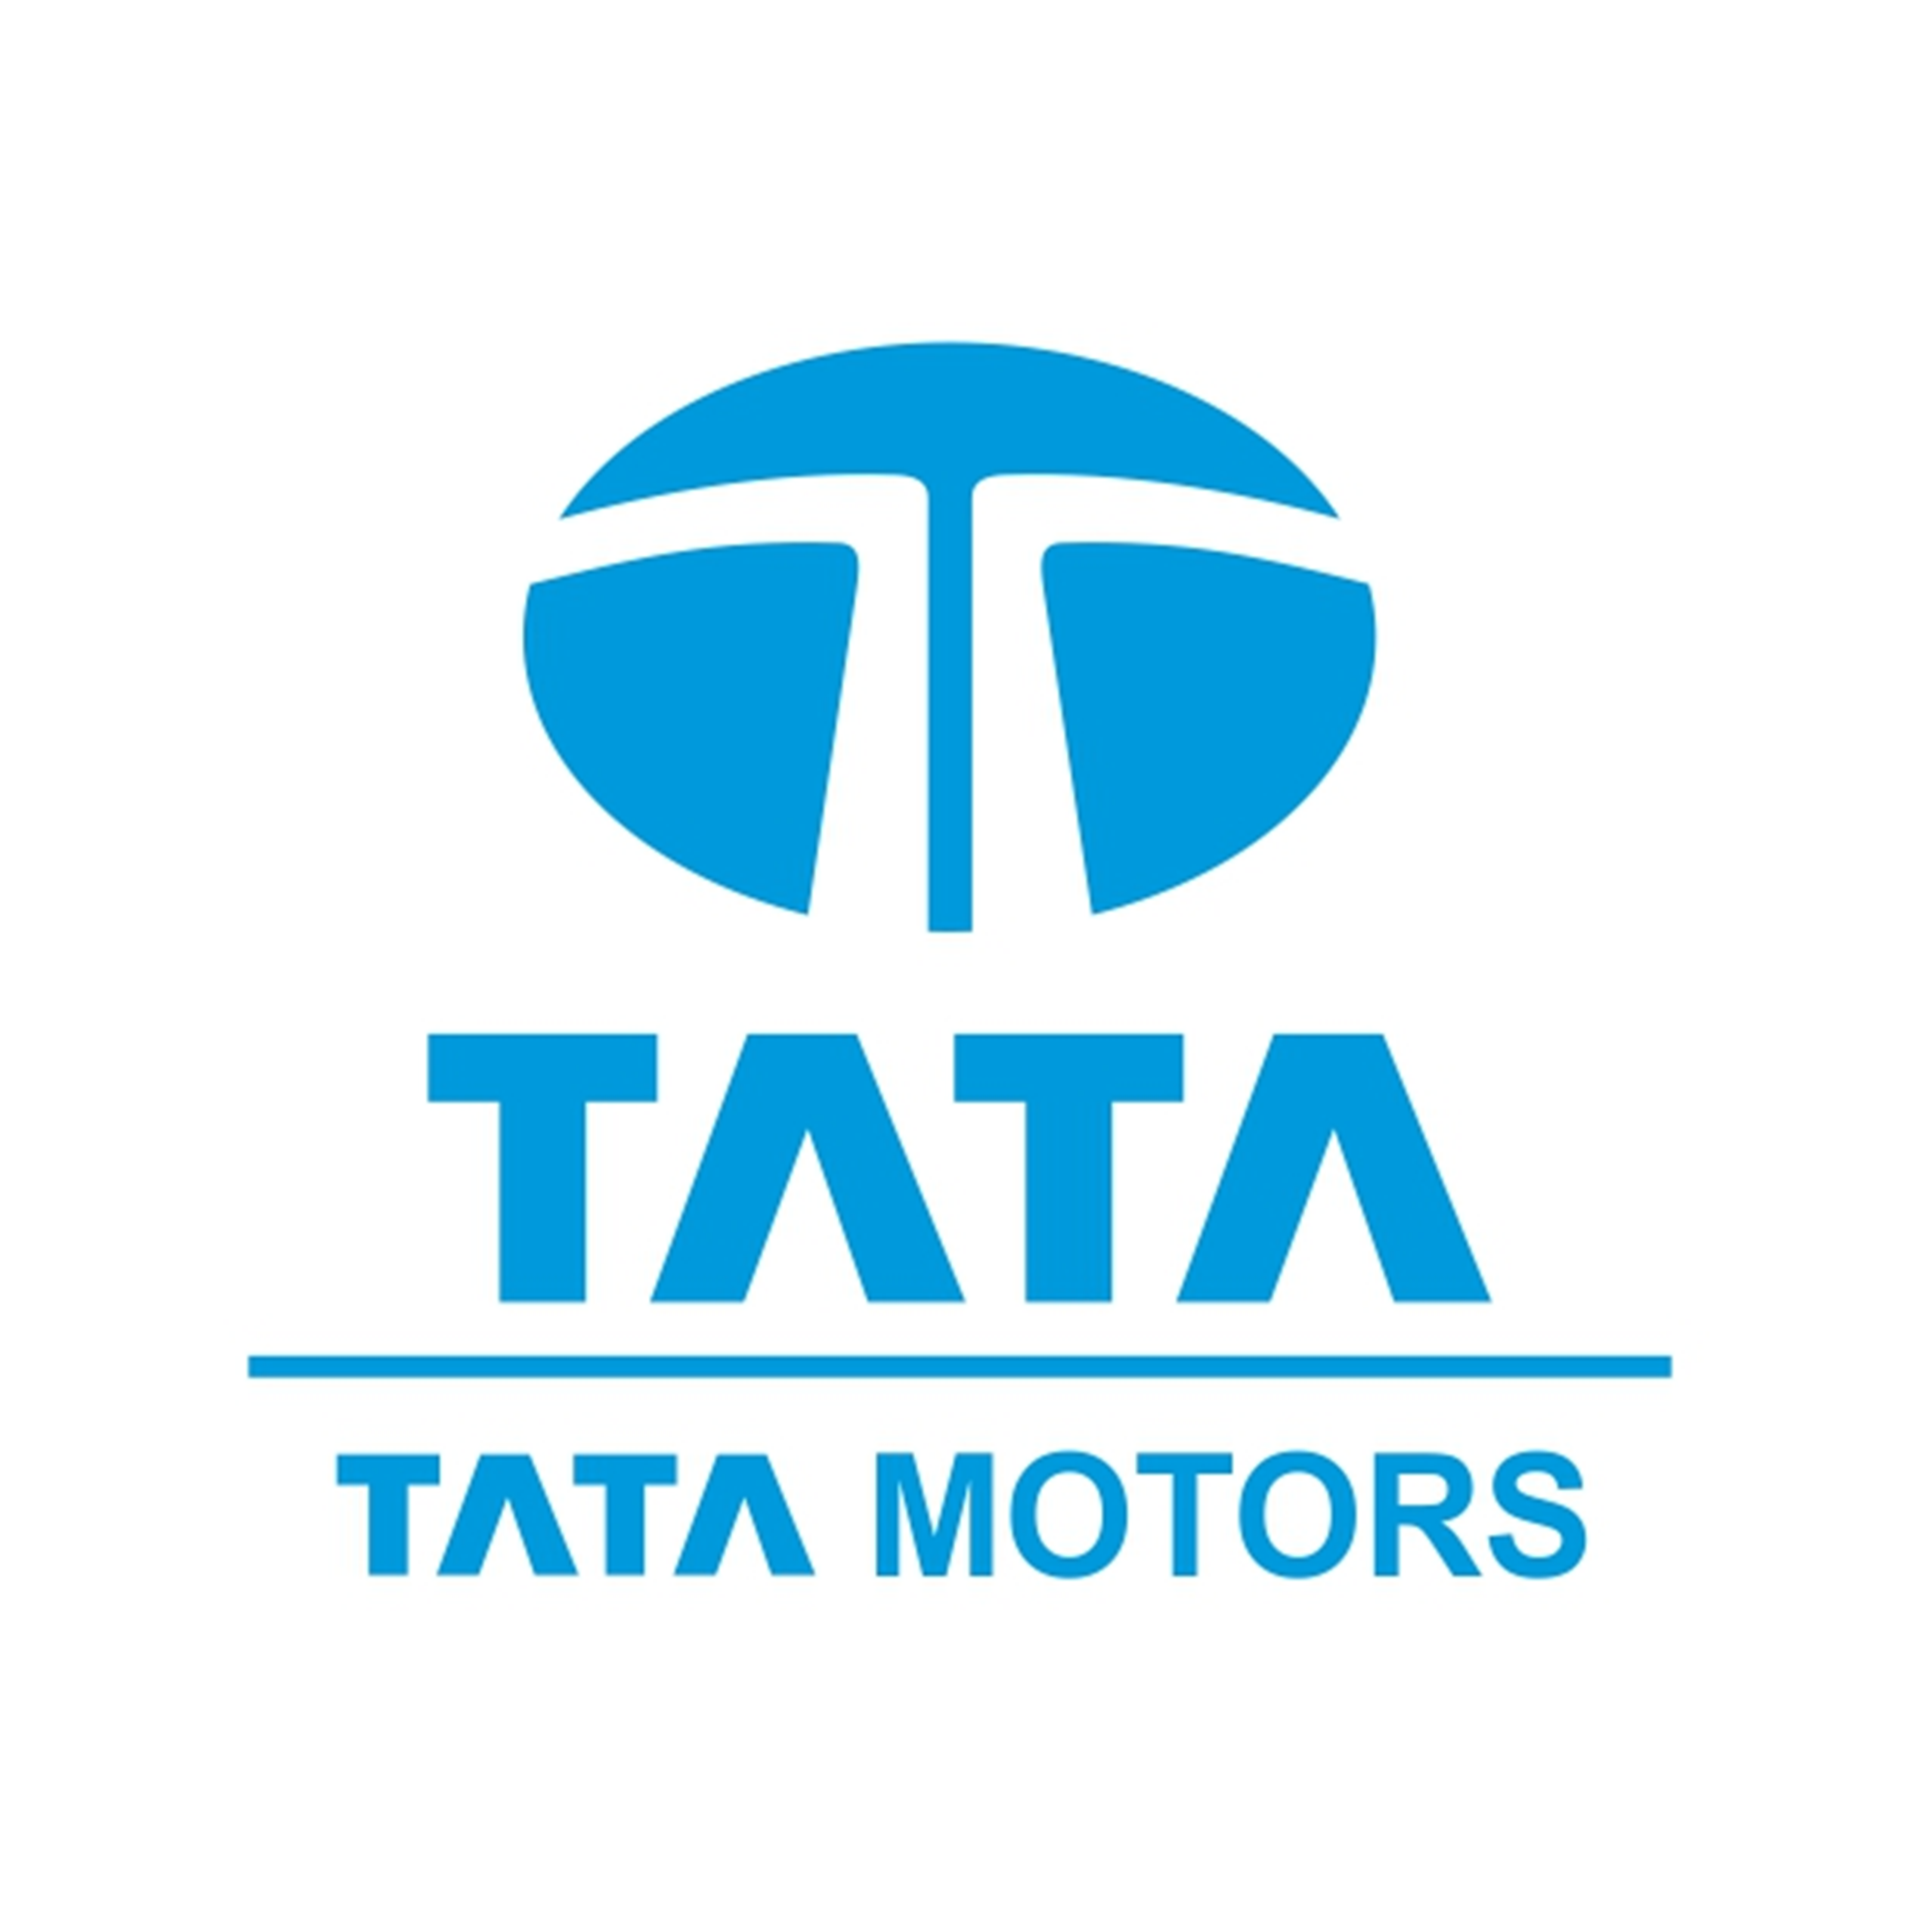 Tata Company Car Photo